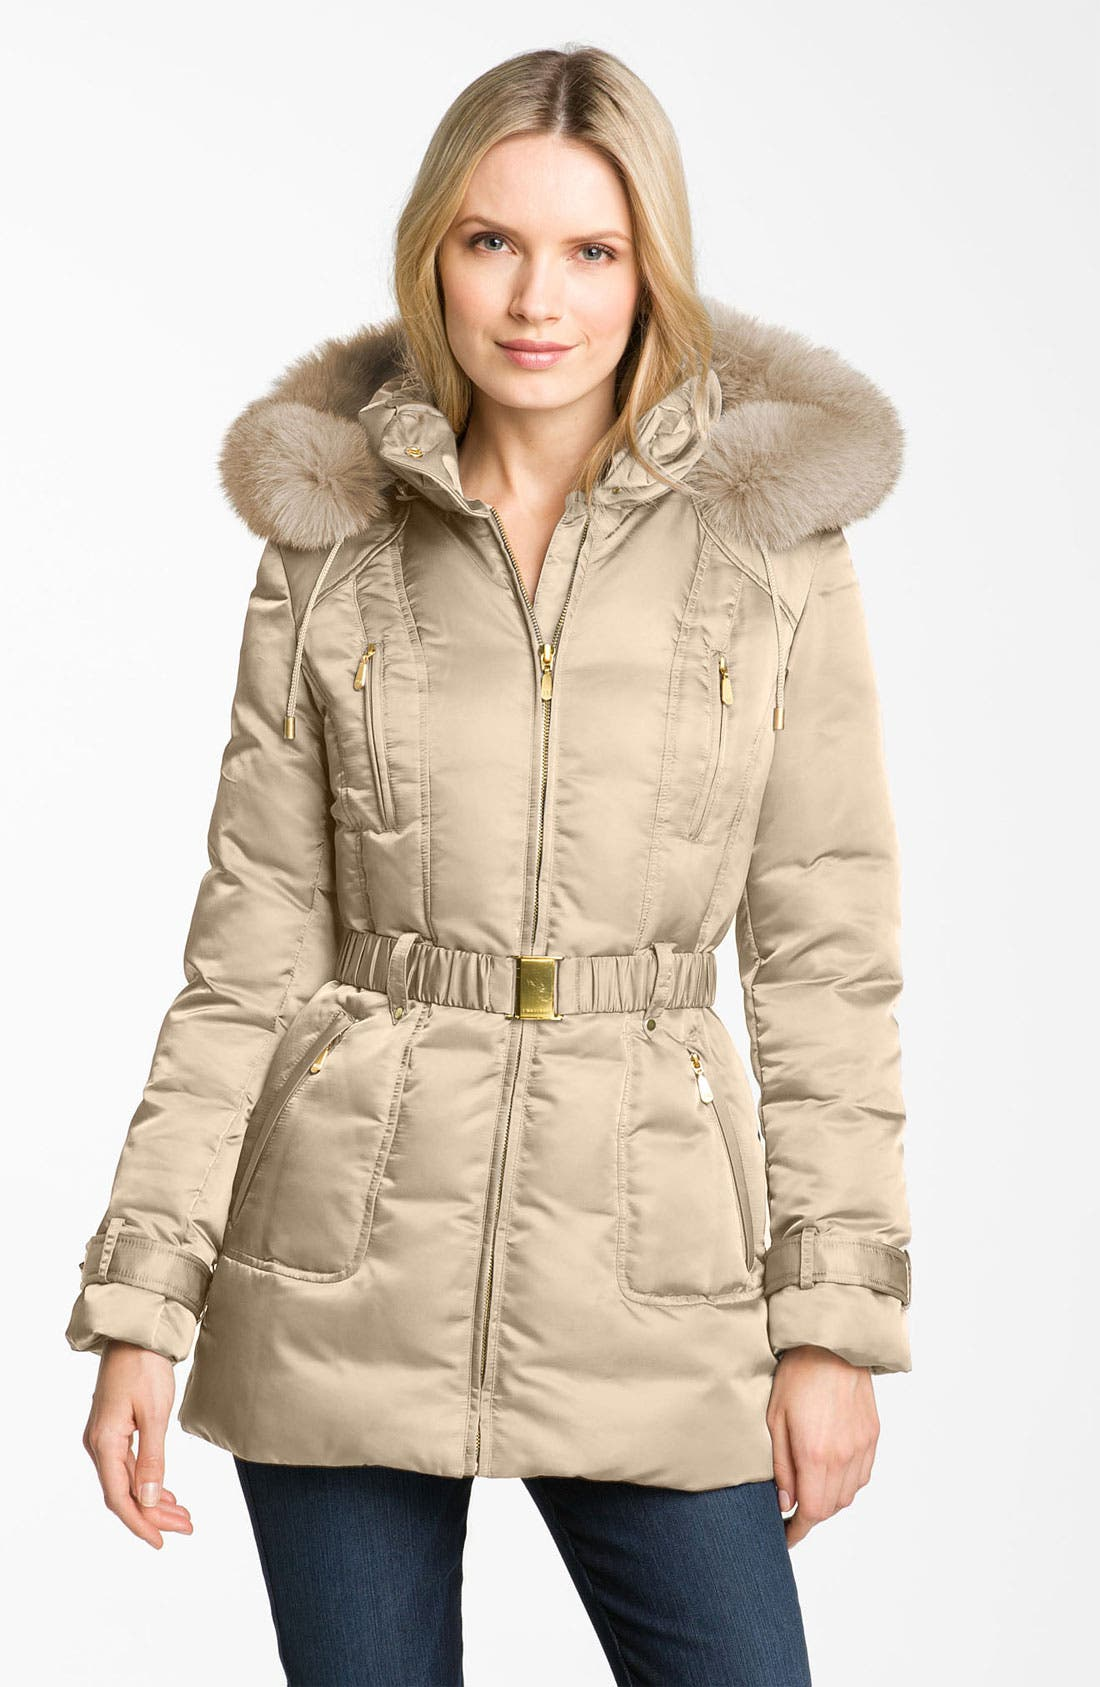 Main Image - 1 Madison Genuine Fox Fur Trim Down Jacket (Online Exclusive)